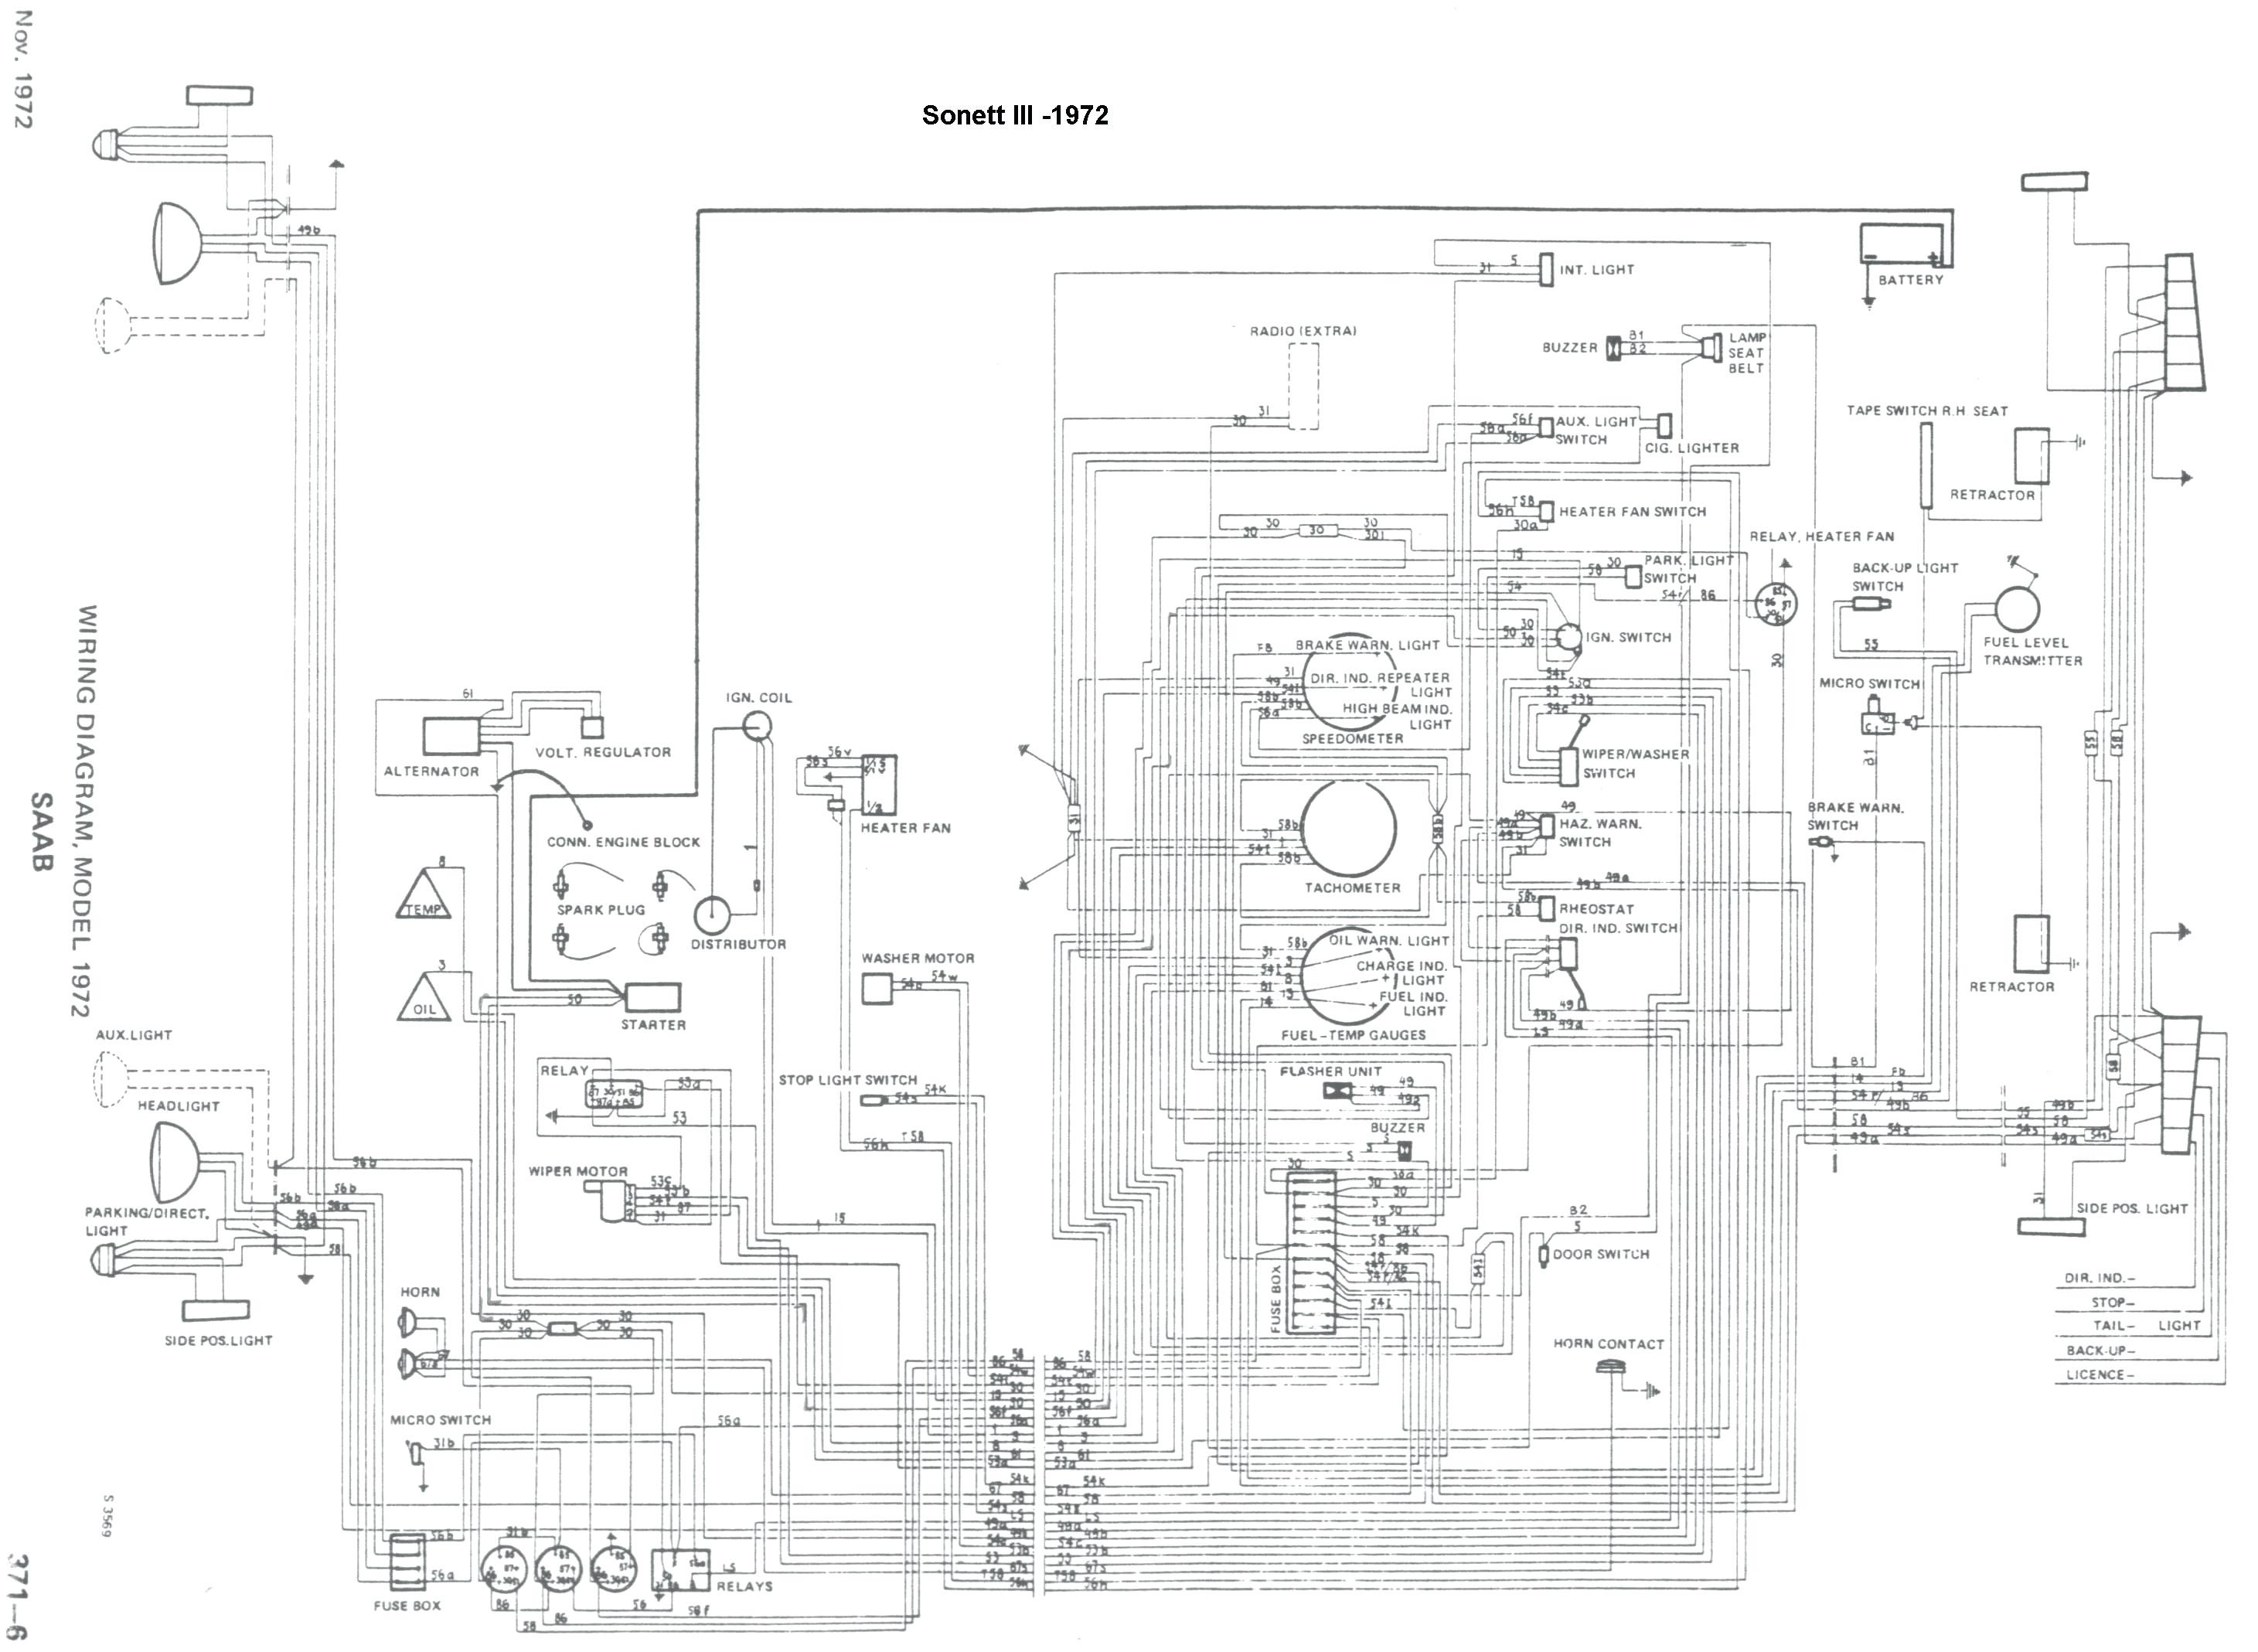 2000 Volvo S80 Engine Diagram 1993 Saab 9000 Engine Diagram Saab Wiring Diagrams Instructions Of 2000 Volvo S80 Engine Diagram